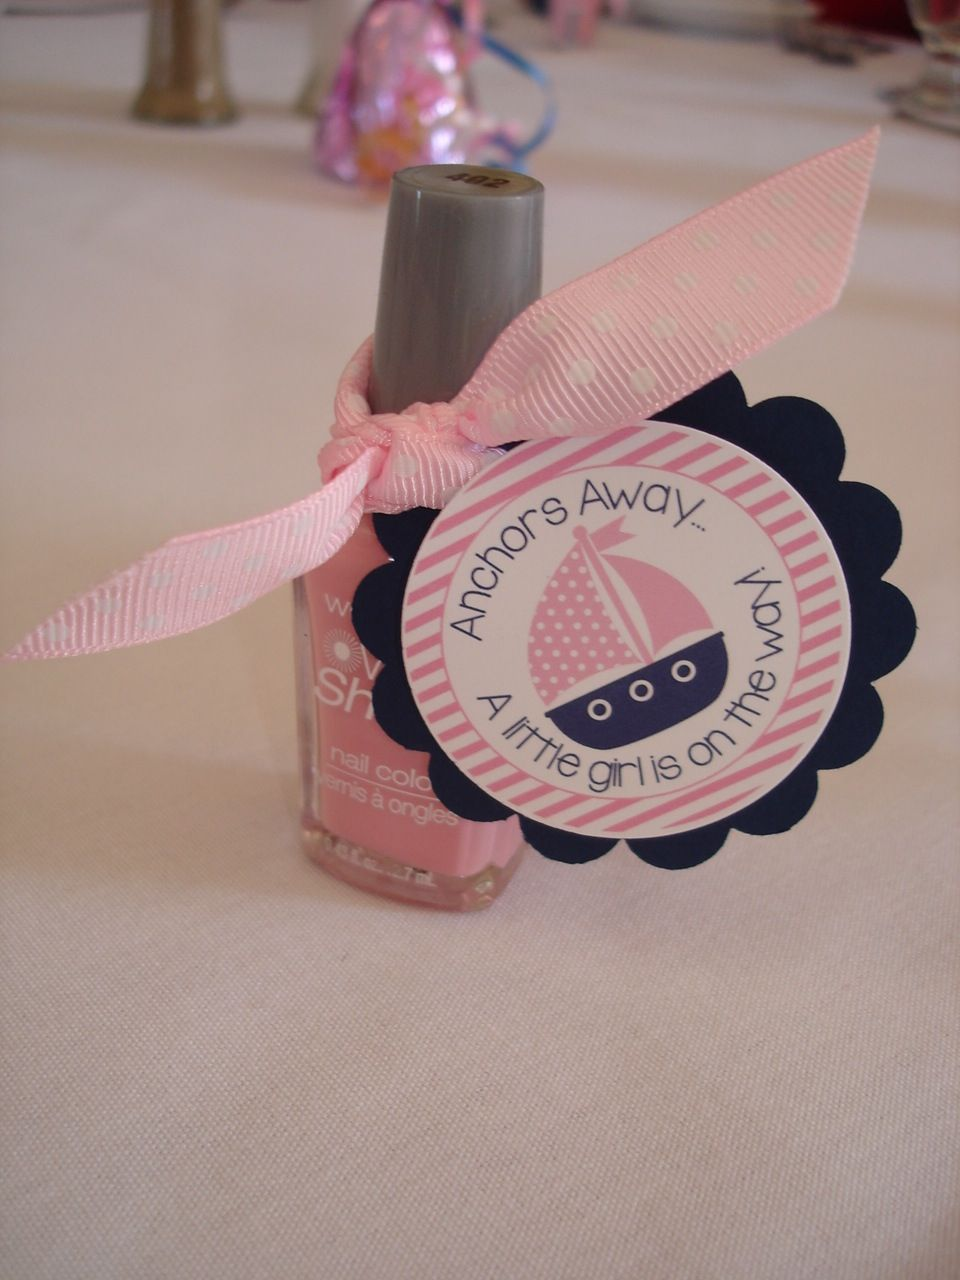 Tickled Pink nail polish party favor Nail polish party